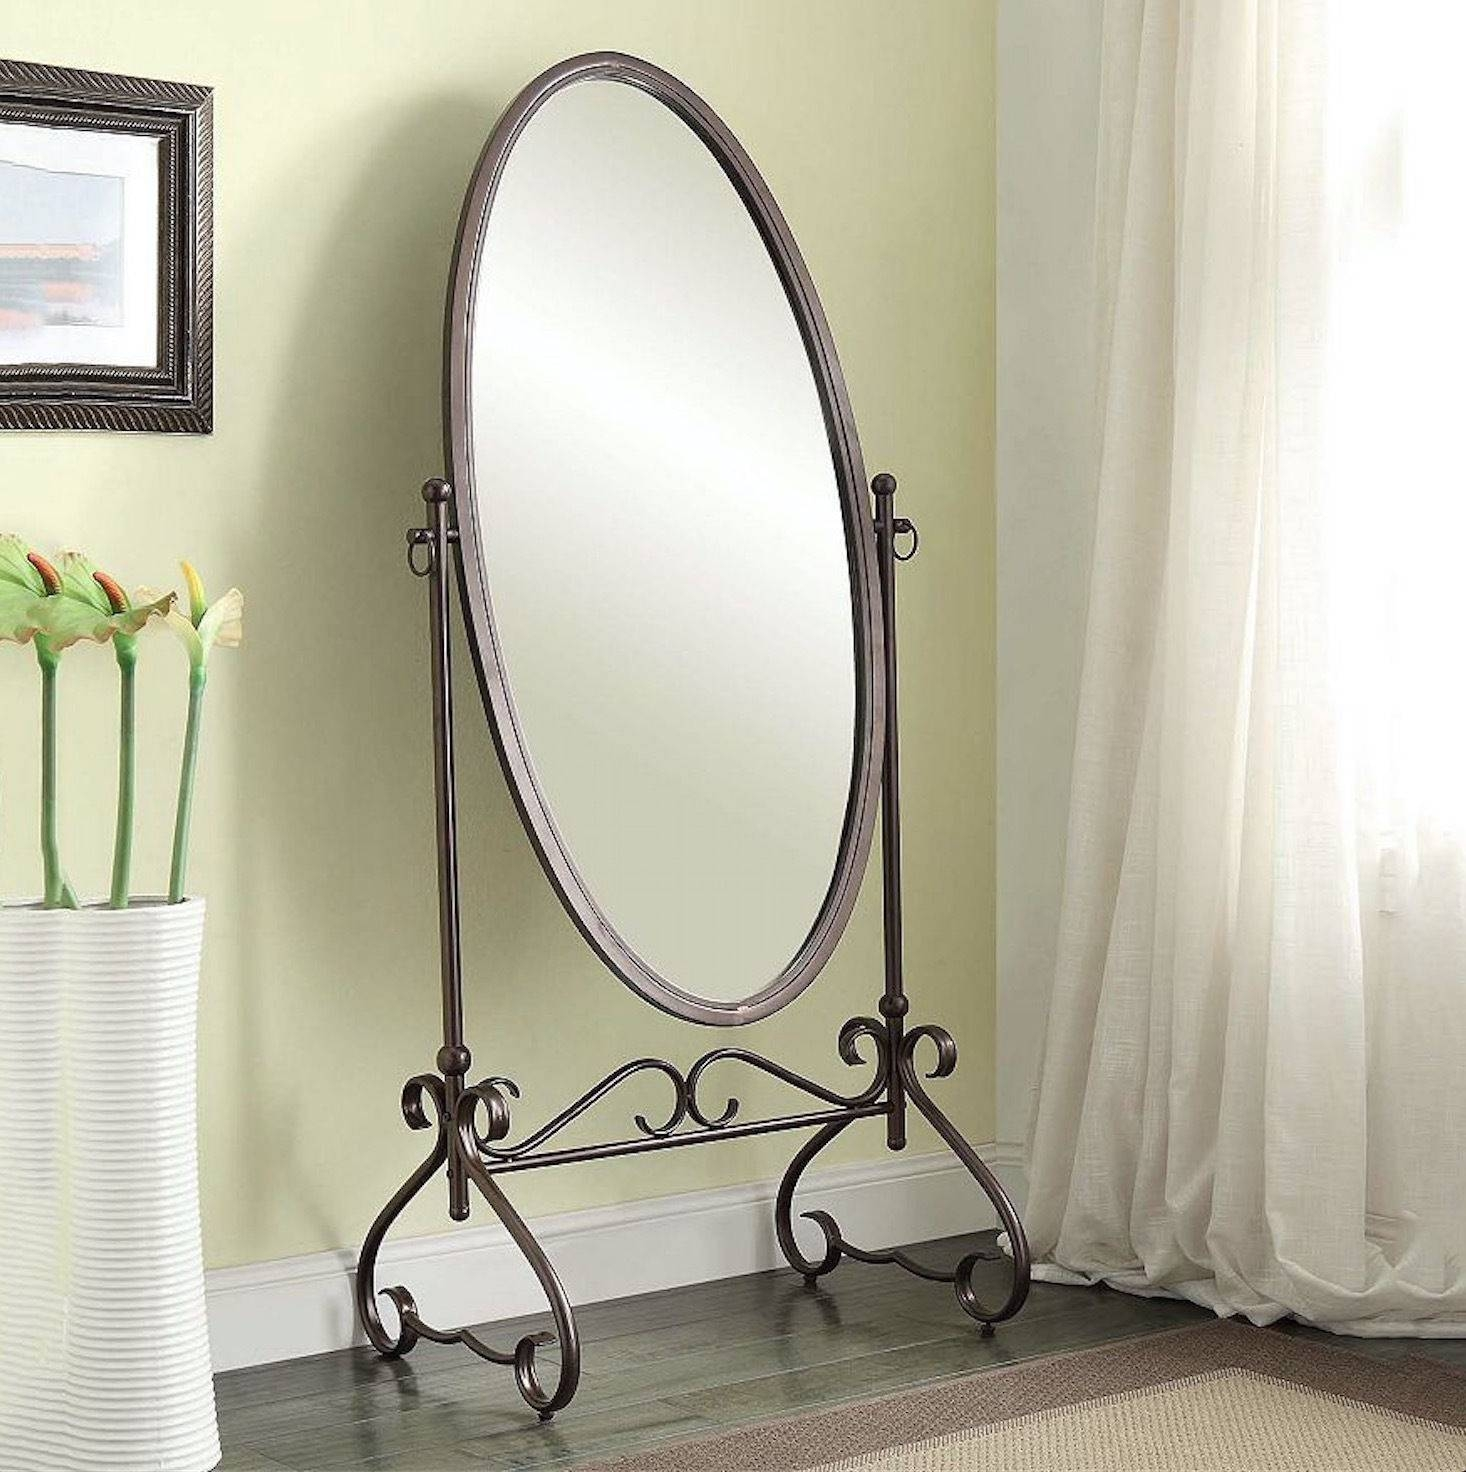 Mirror : Id F Stunning Oval Freestanding Mirror Stunning Large for Free Standing Antique Mirrors (Image 10 of 15)